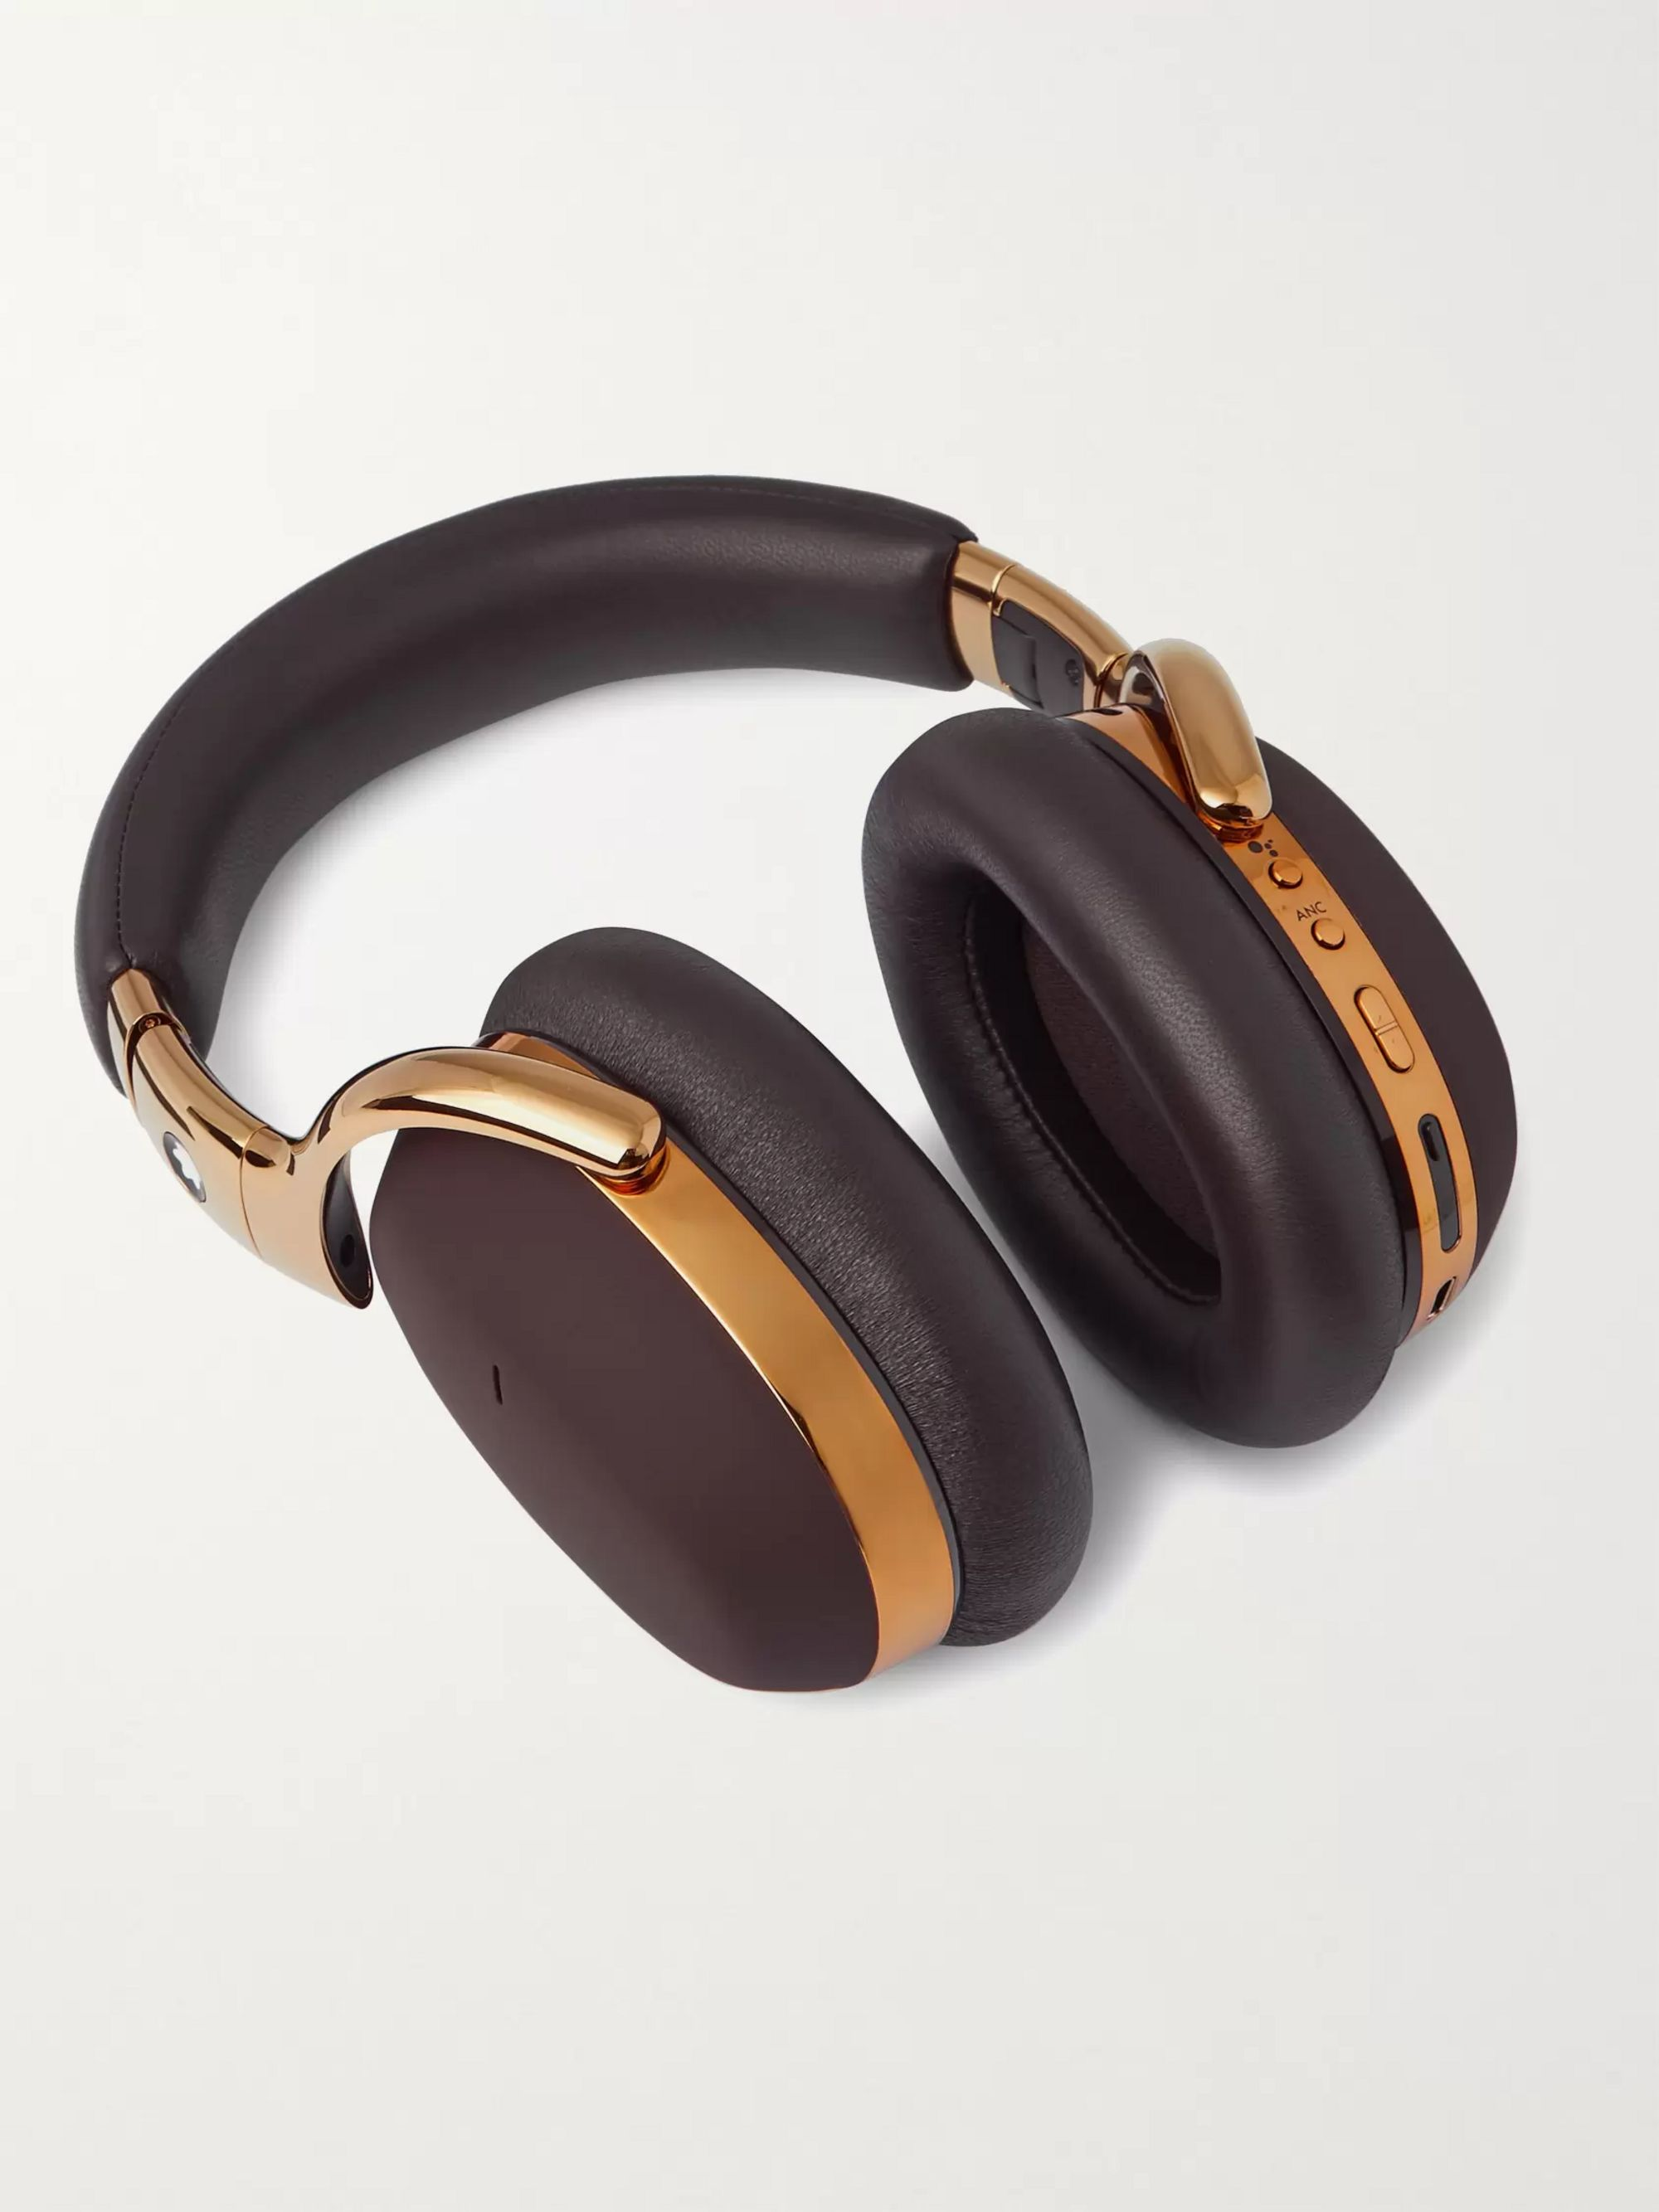 MONTBLANC MB 01 Leather Wireless Headphones